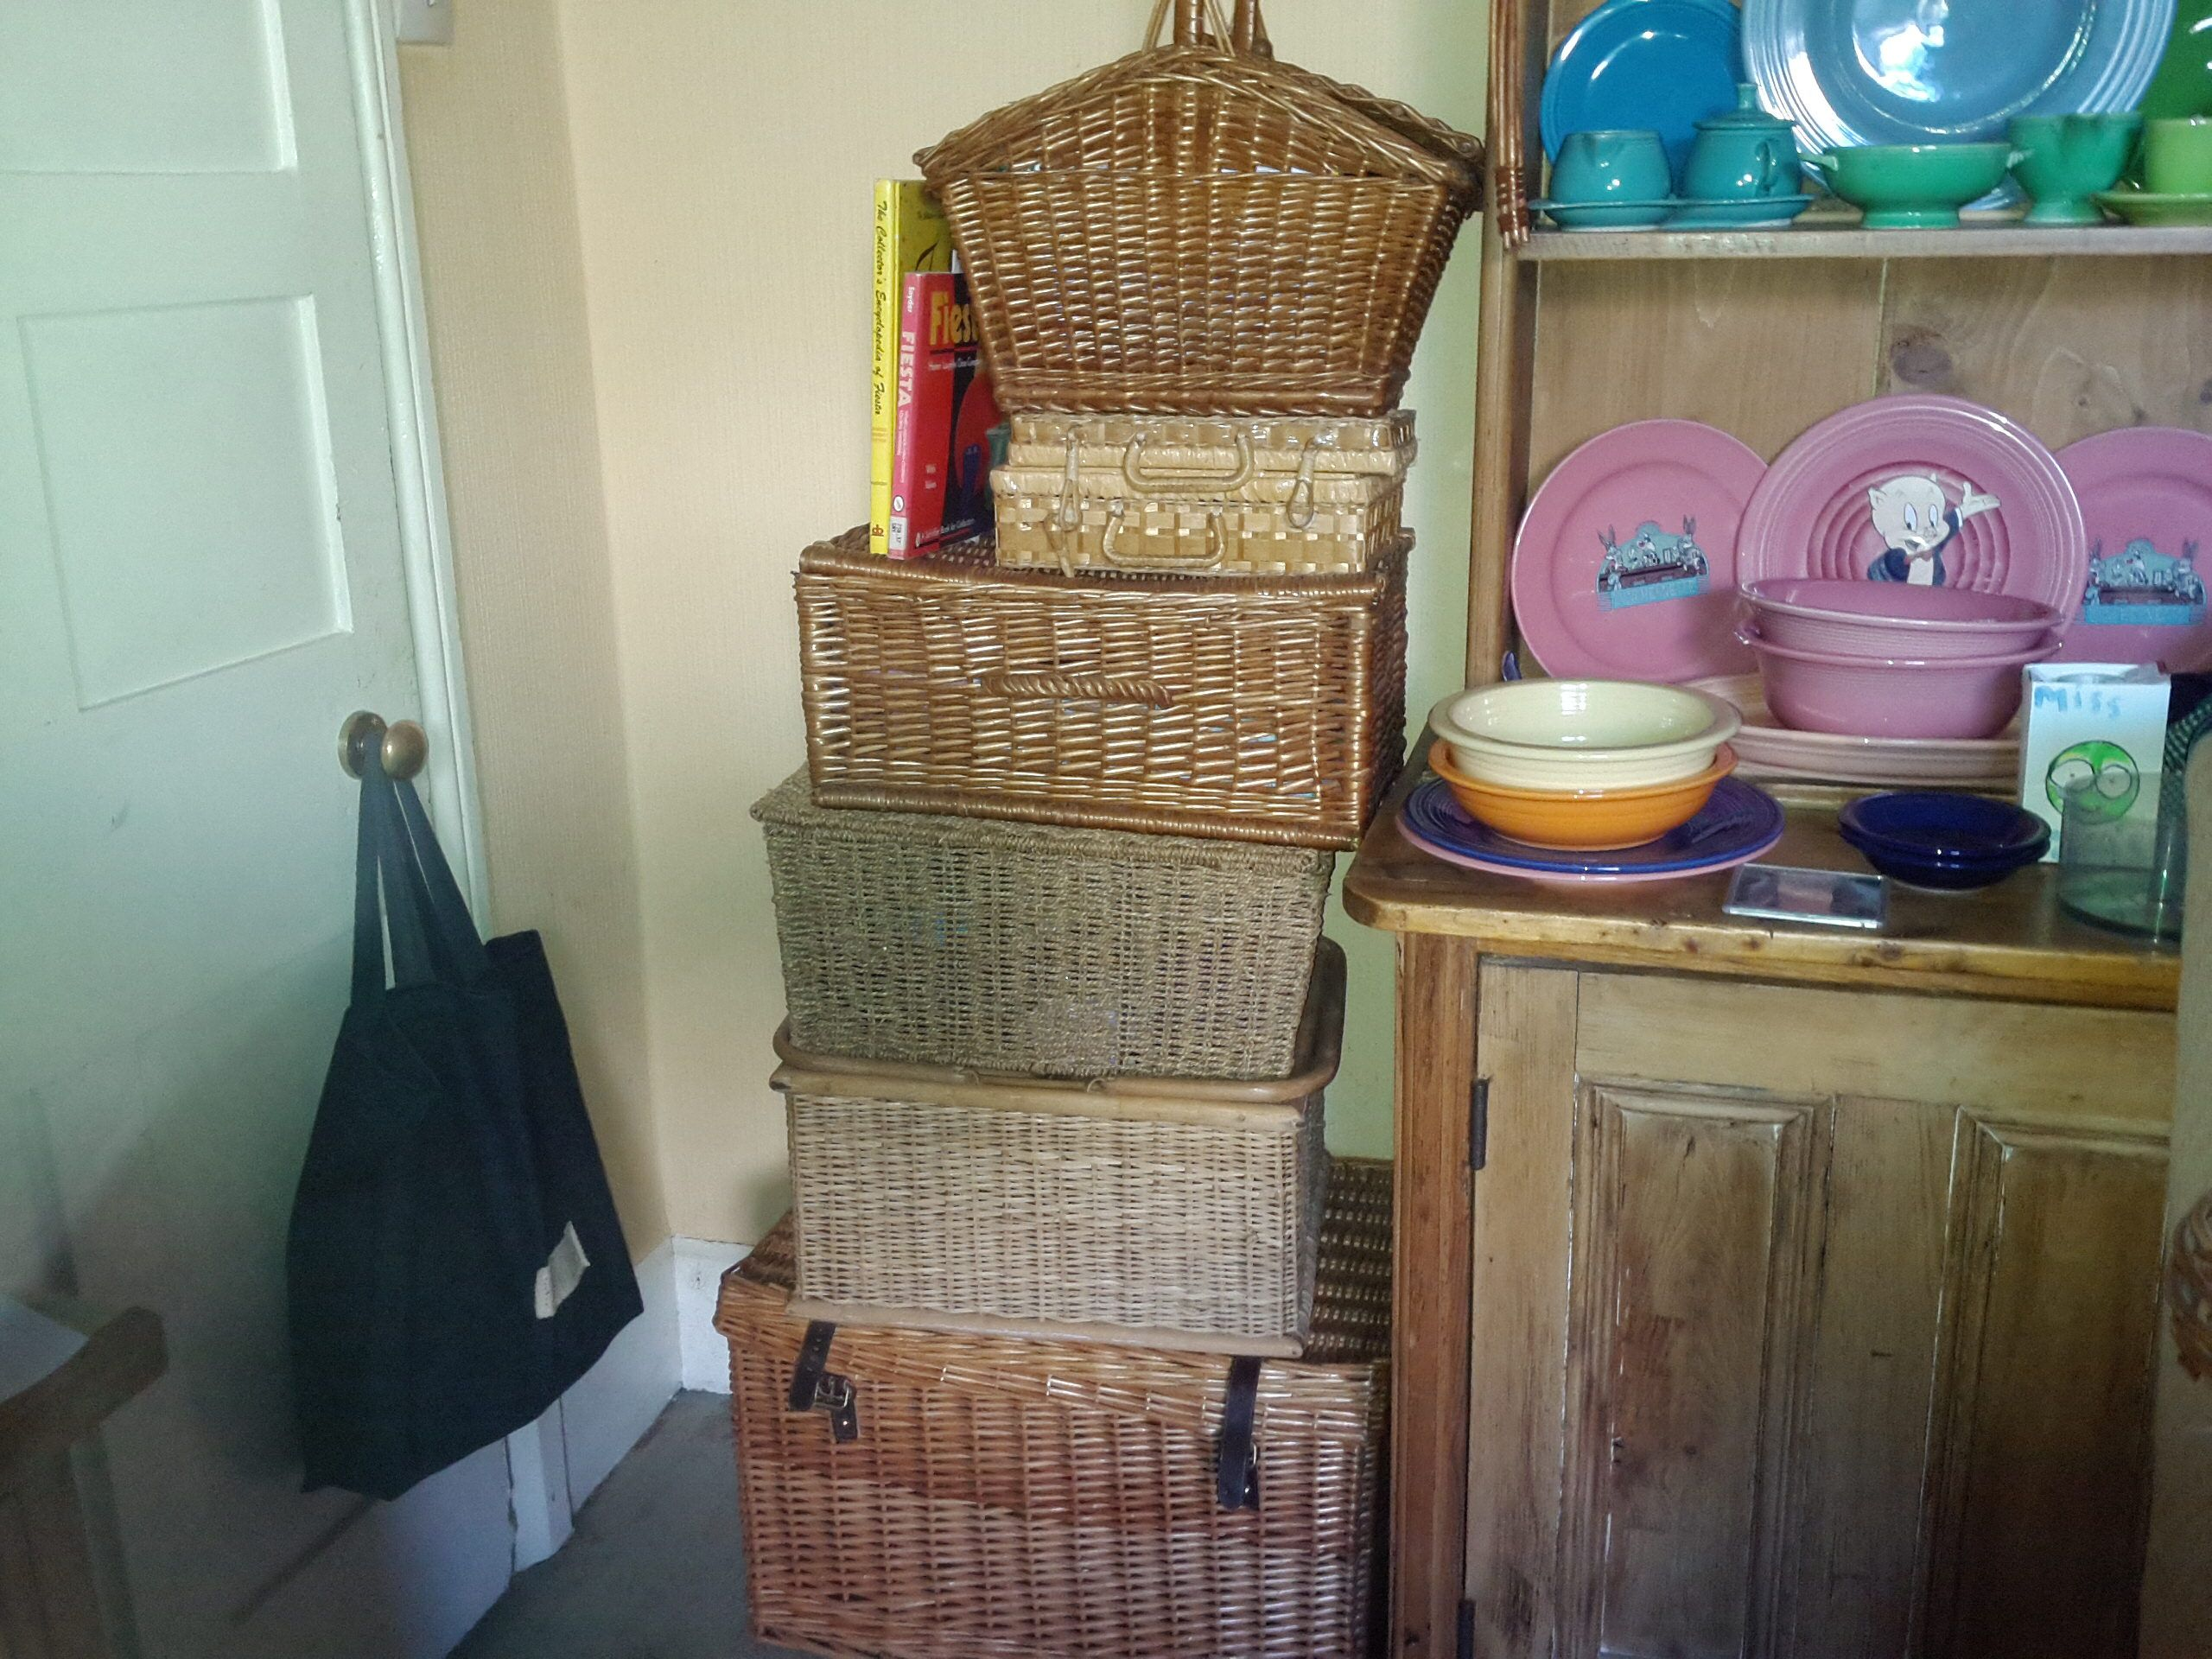 My stack of picnic baskets stores loads of things the